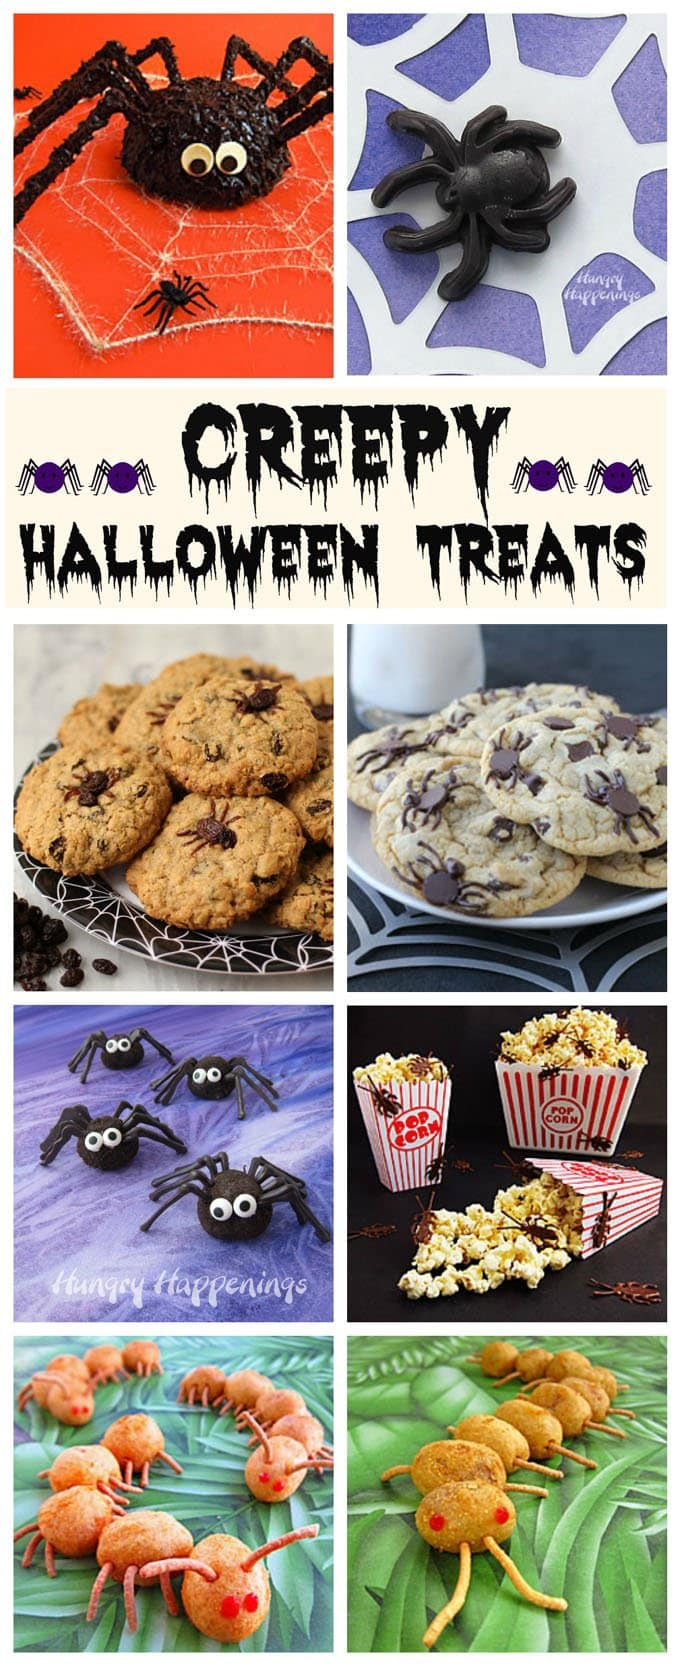 Make your friends squirm this Halloween by serving them some creepy treats.